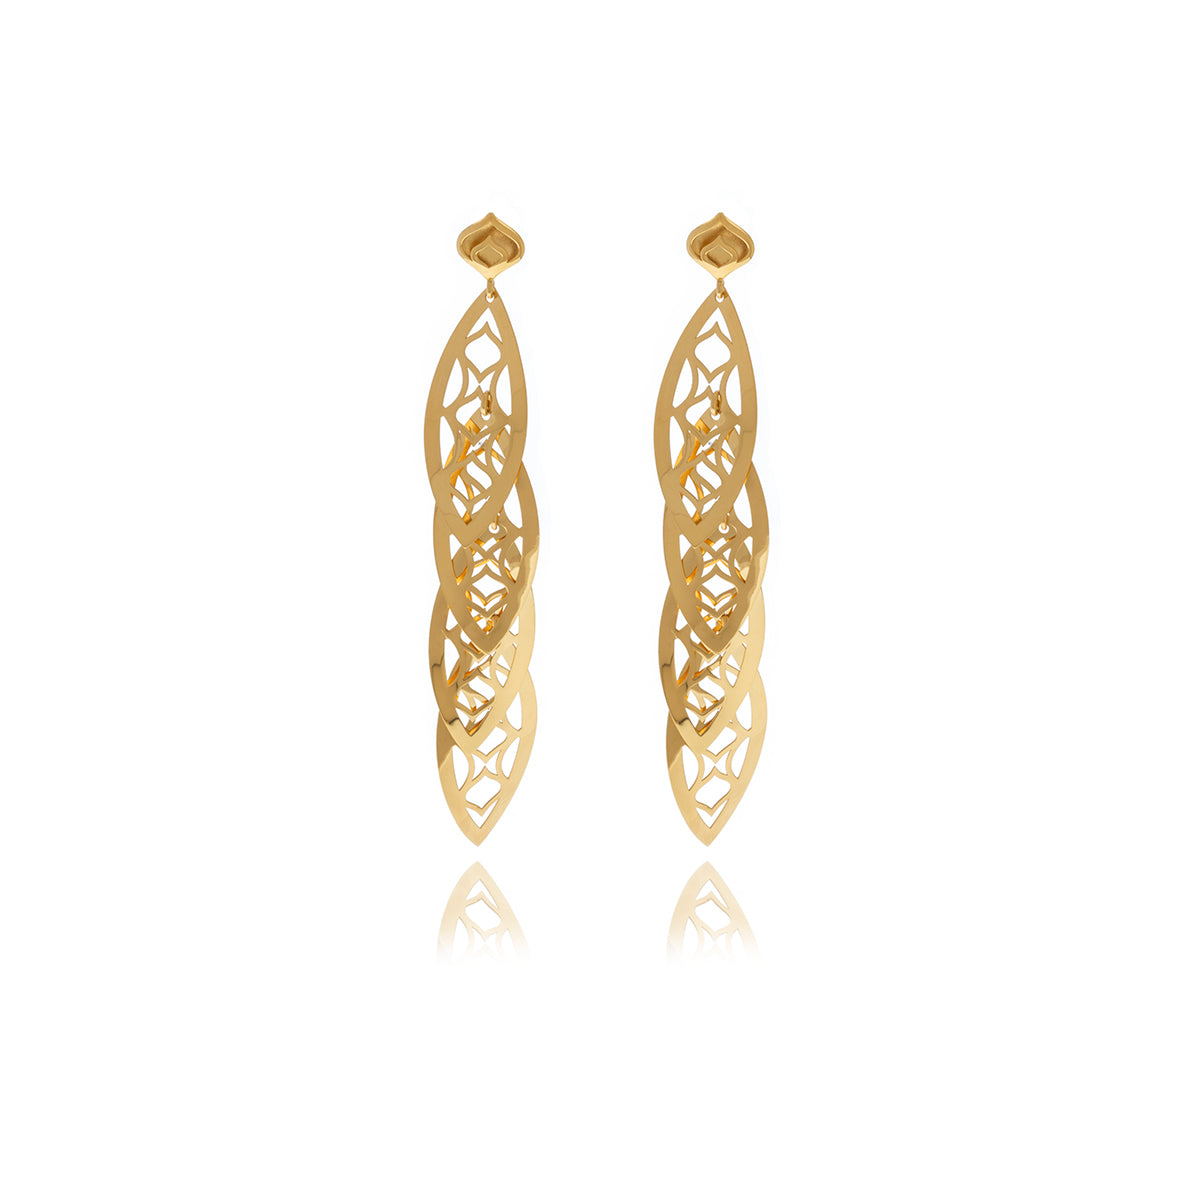 Gold Leaf Chandelier Line Earring - MCK Brands